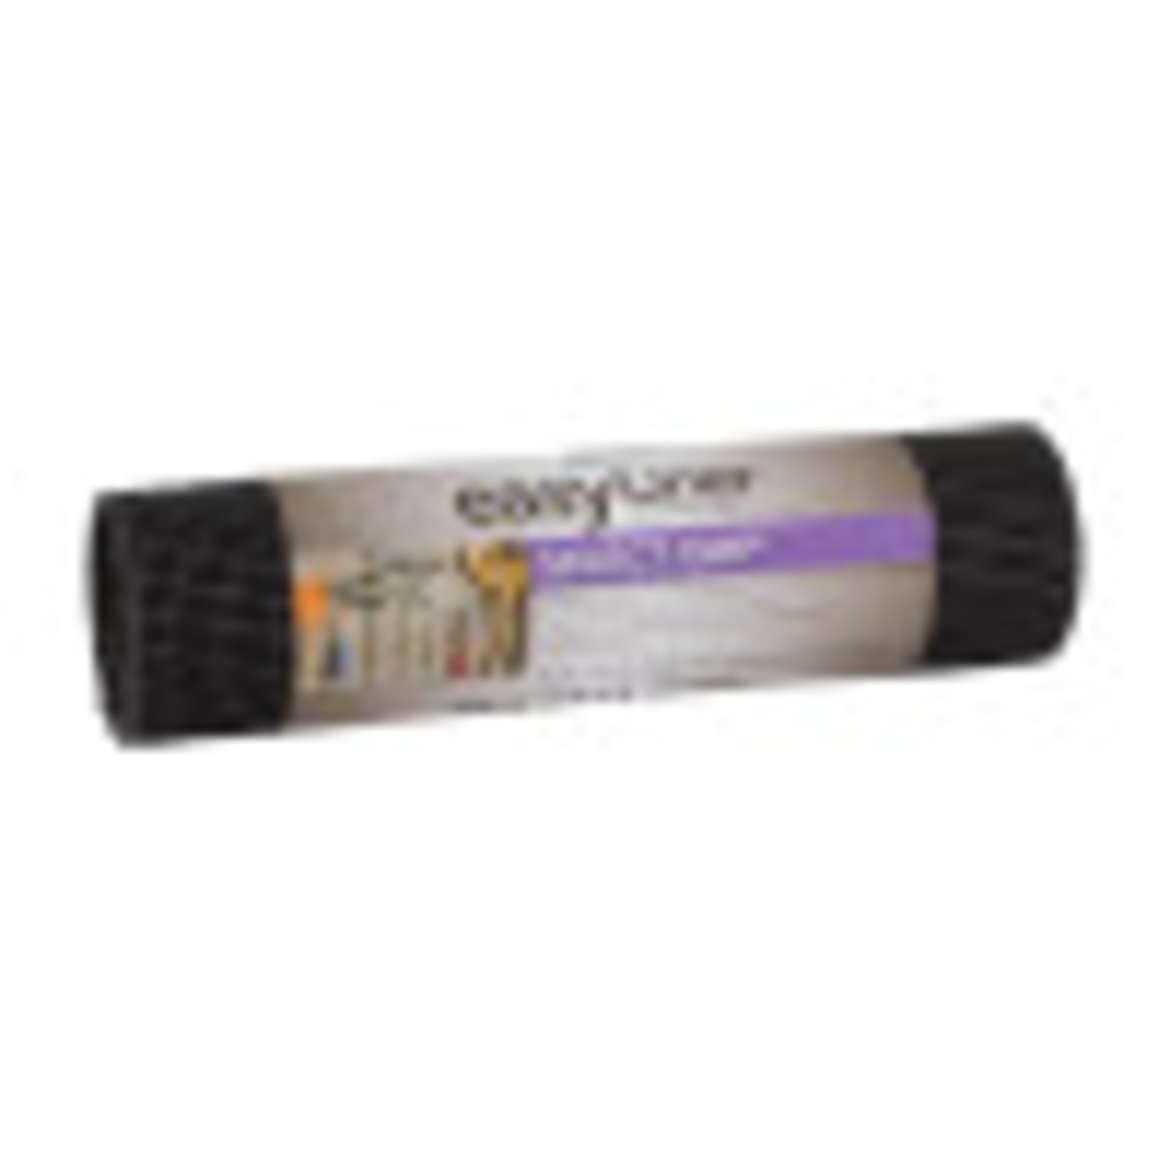 Select Grip™ Easy Liner® Brand Shelf Liner - Black, 12 in. x 10 ft. Image